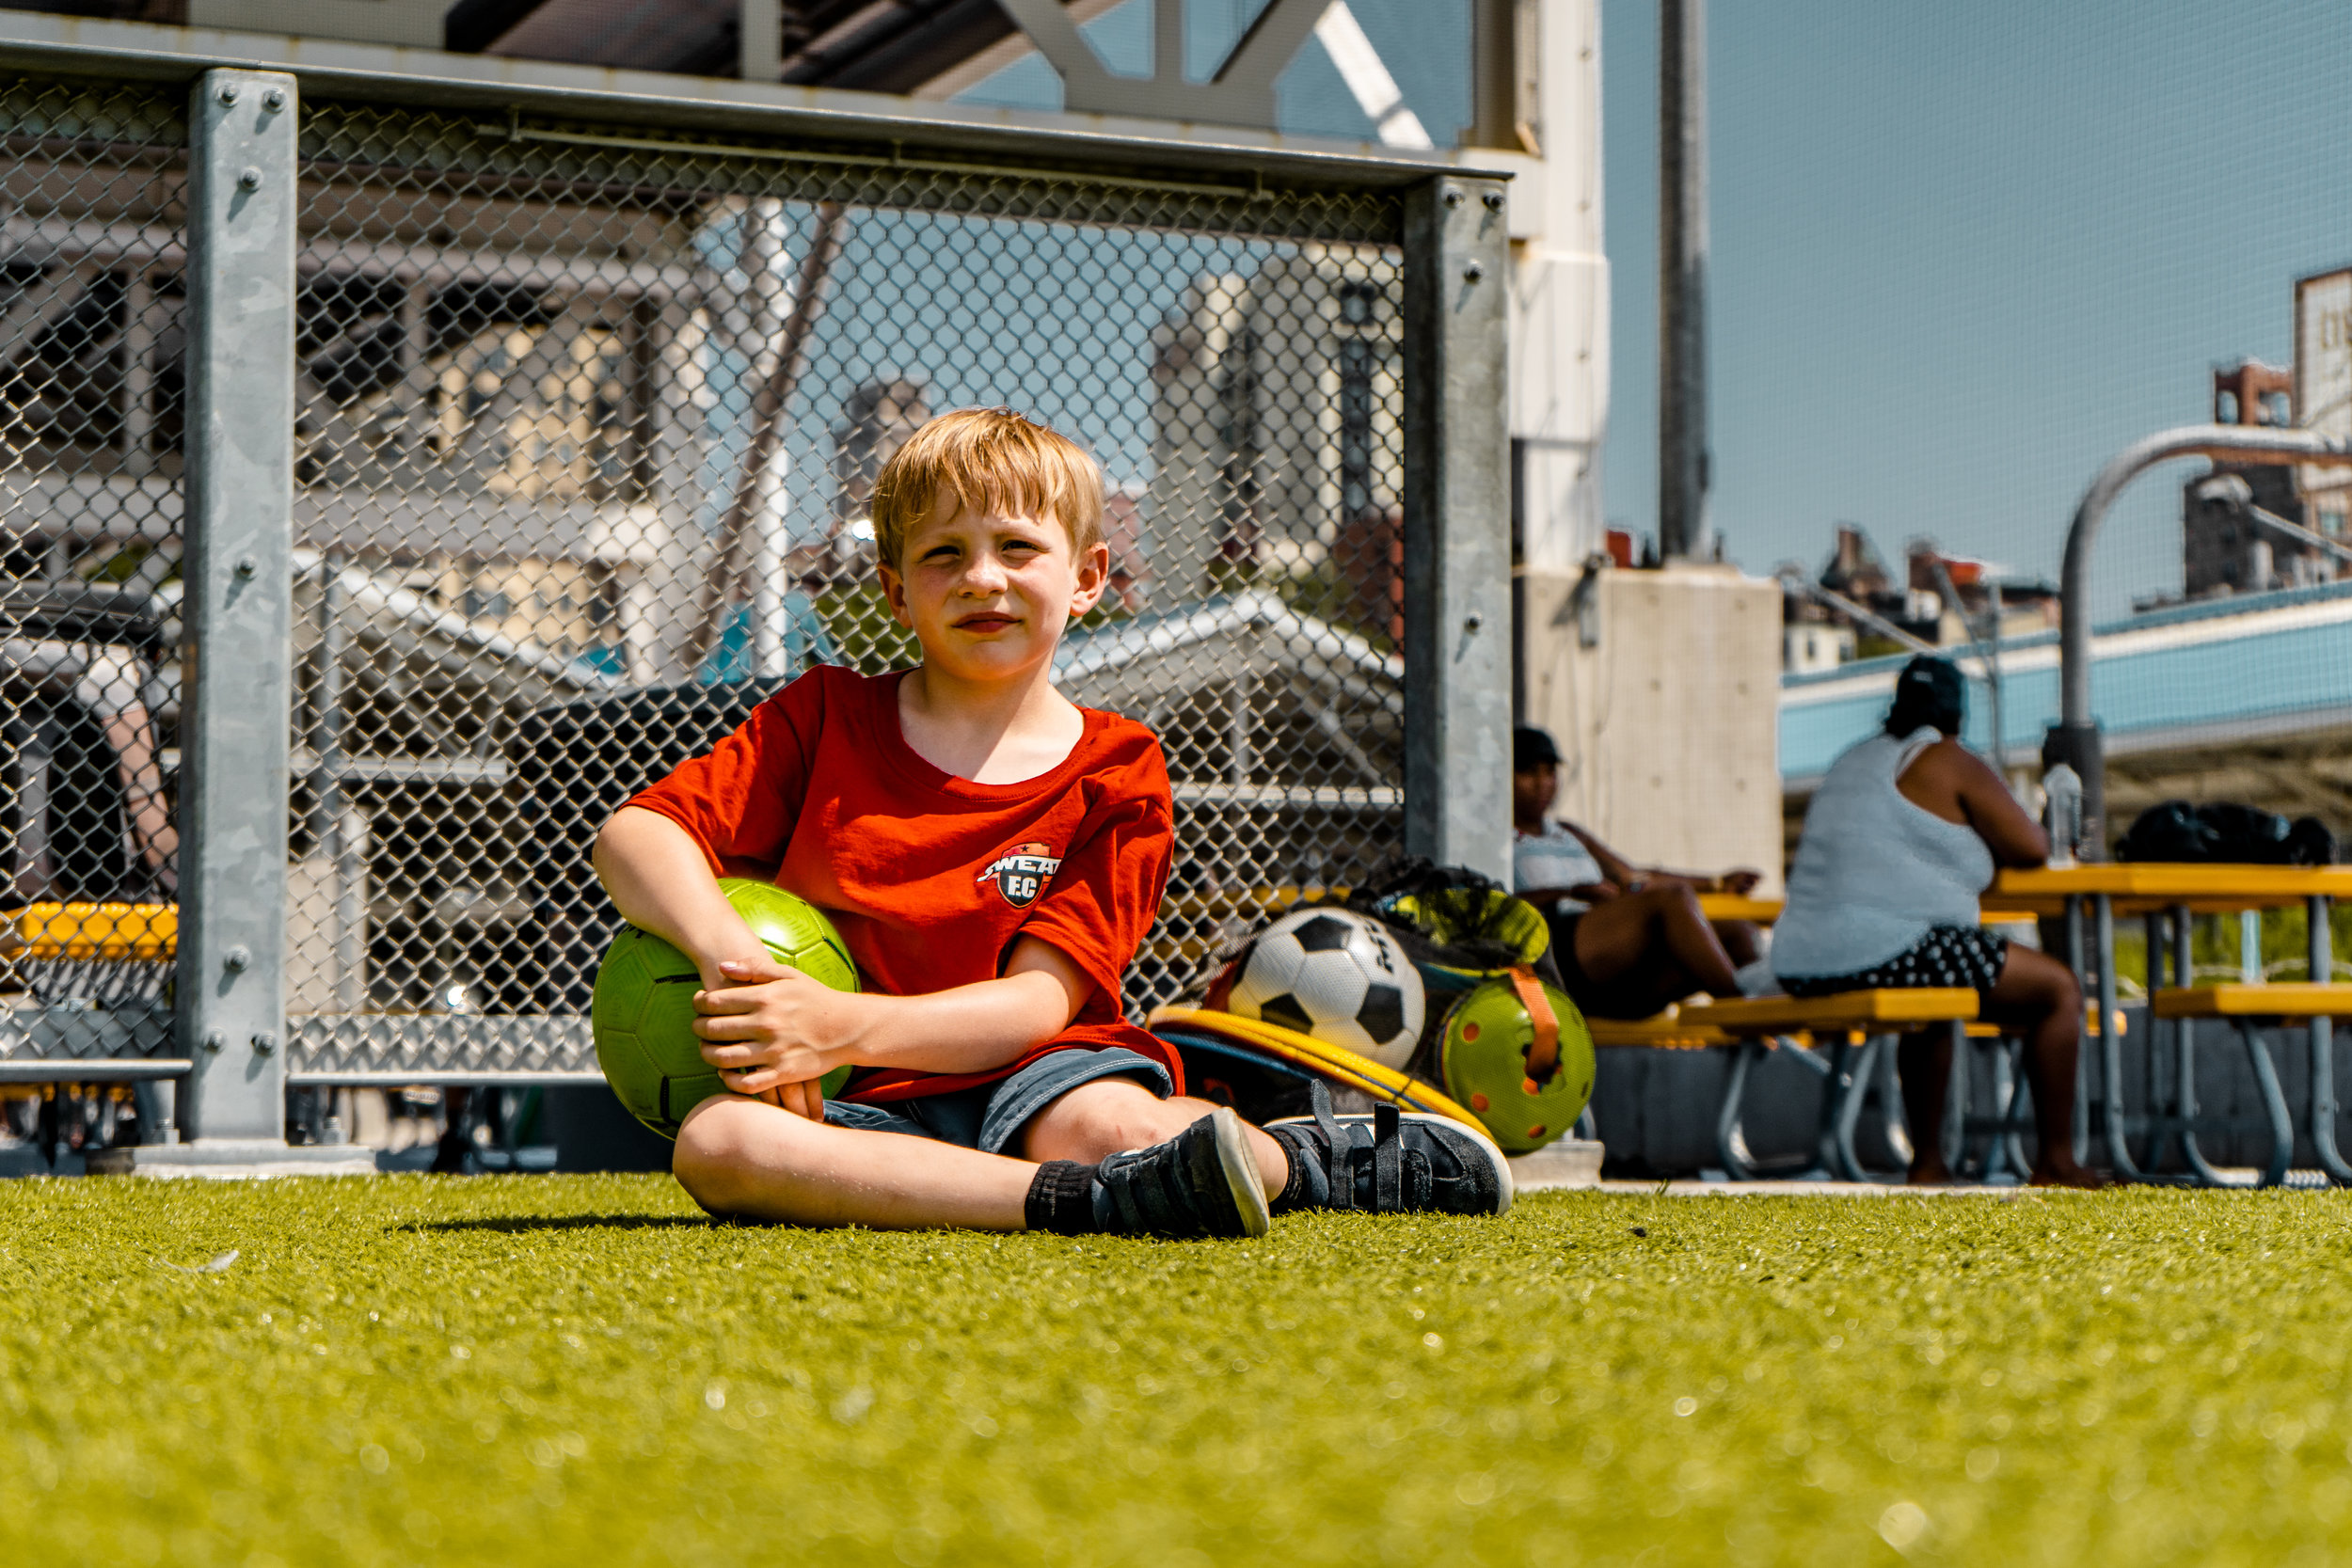 CADMAN PLAZA AGES 2-4 - Our Little Kickers soccer is for kids ages 2-4 years old.